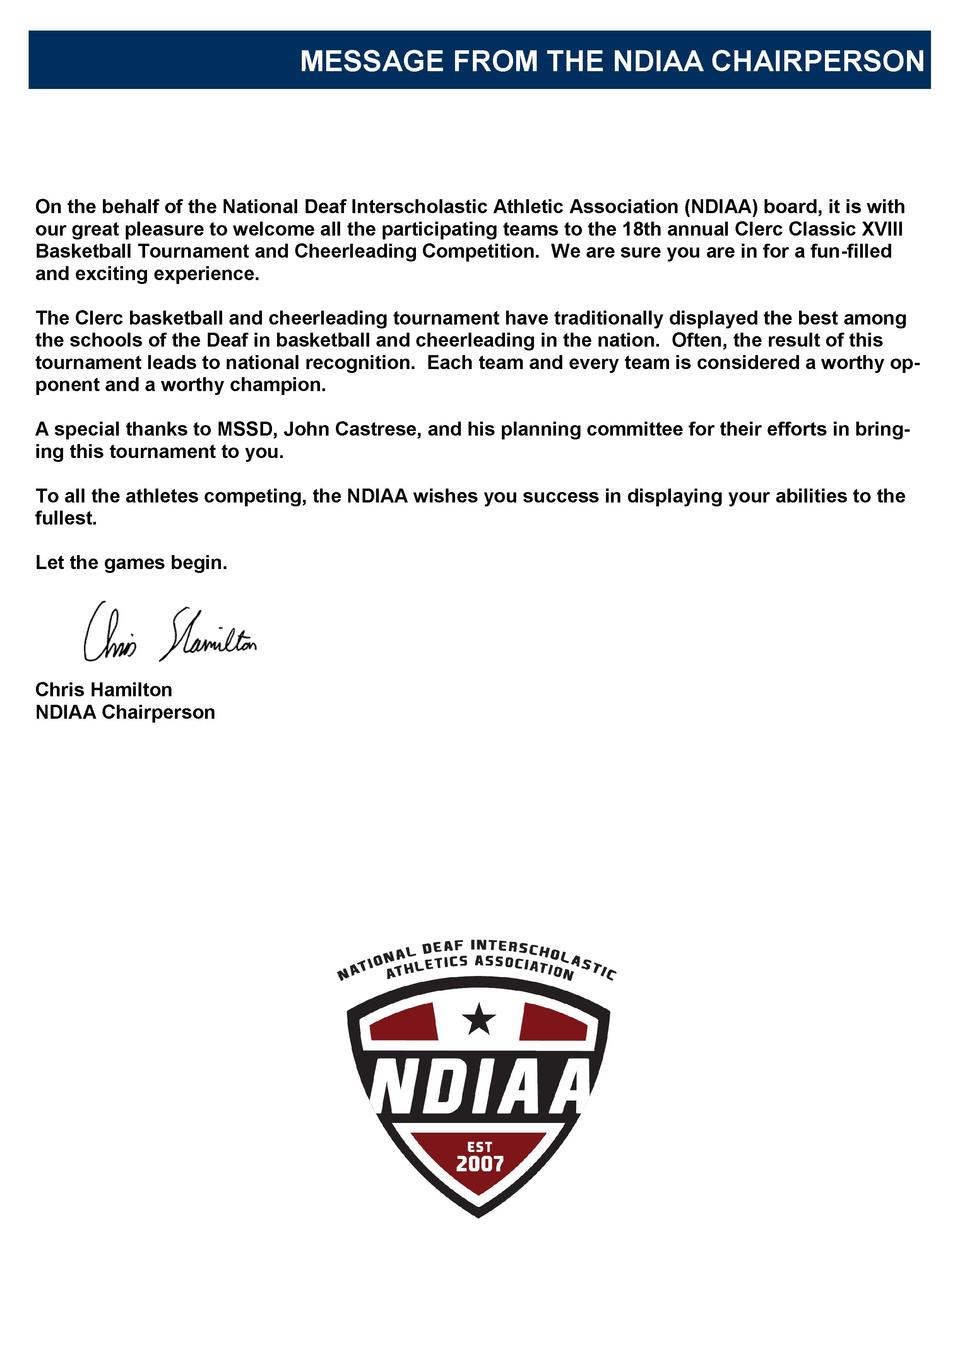 MESSAGE FROM THE NDIAA CHAIRPERSON  On the behalf of the National Deaf Interscholastic Athletic Association  NDIAA  board,...